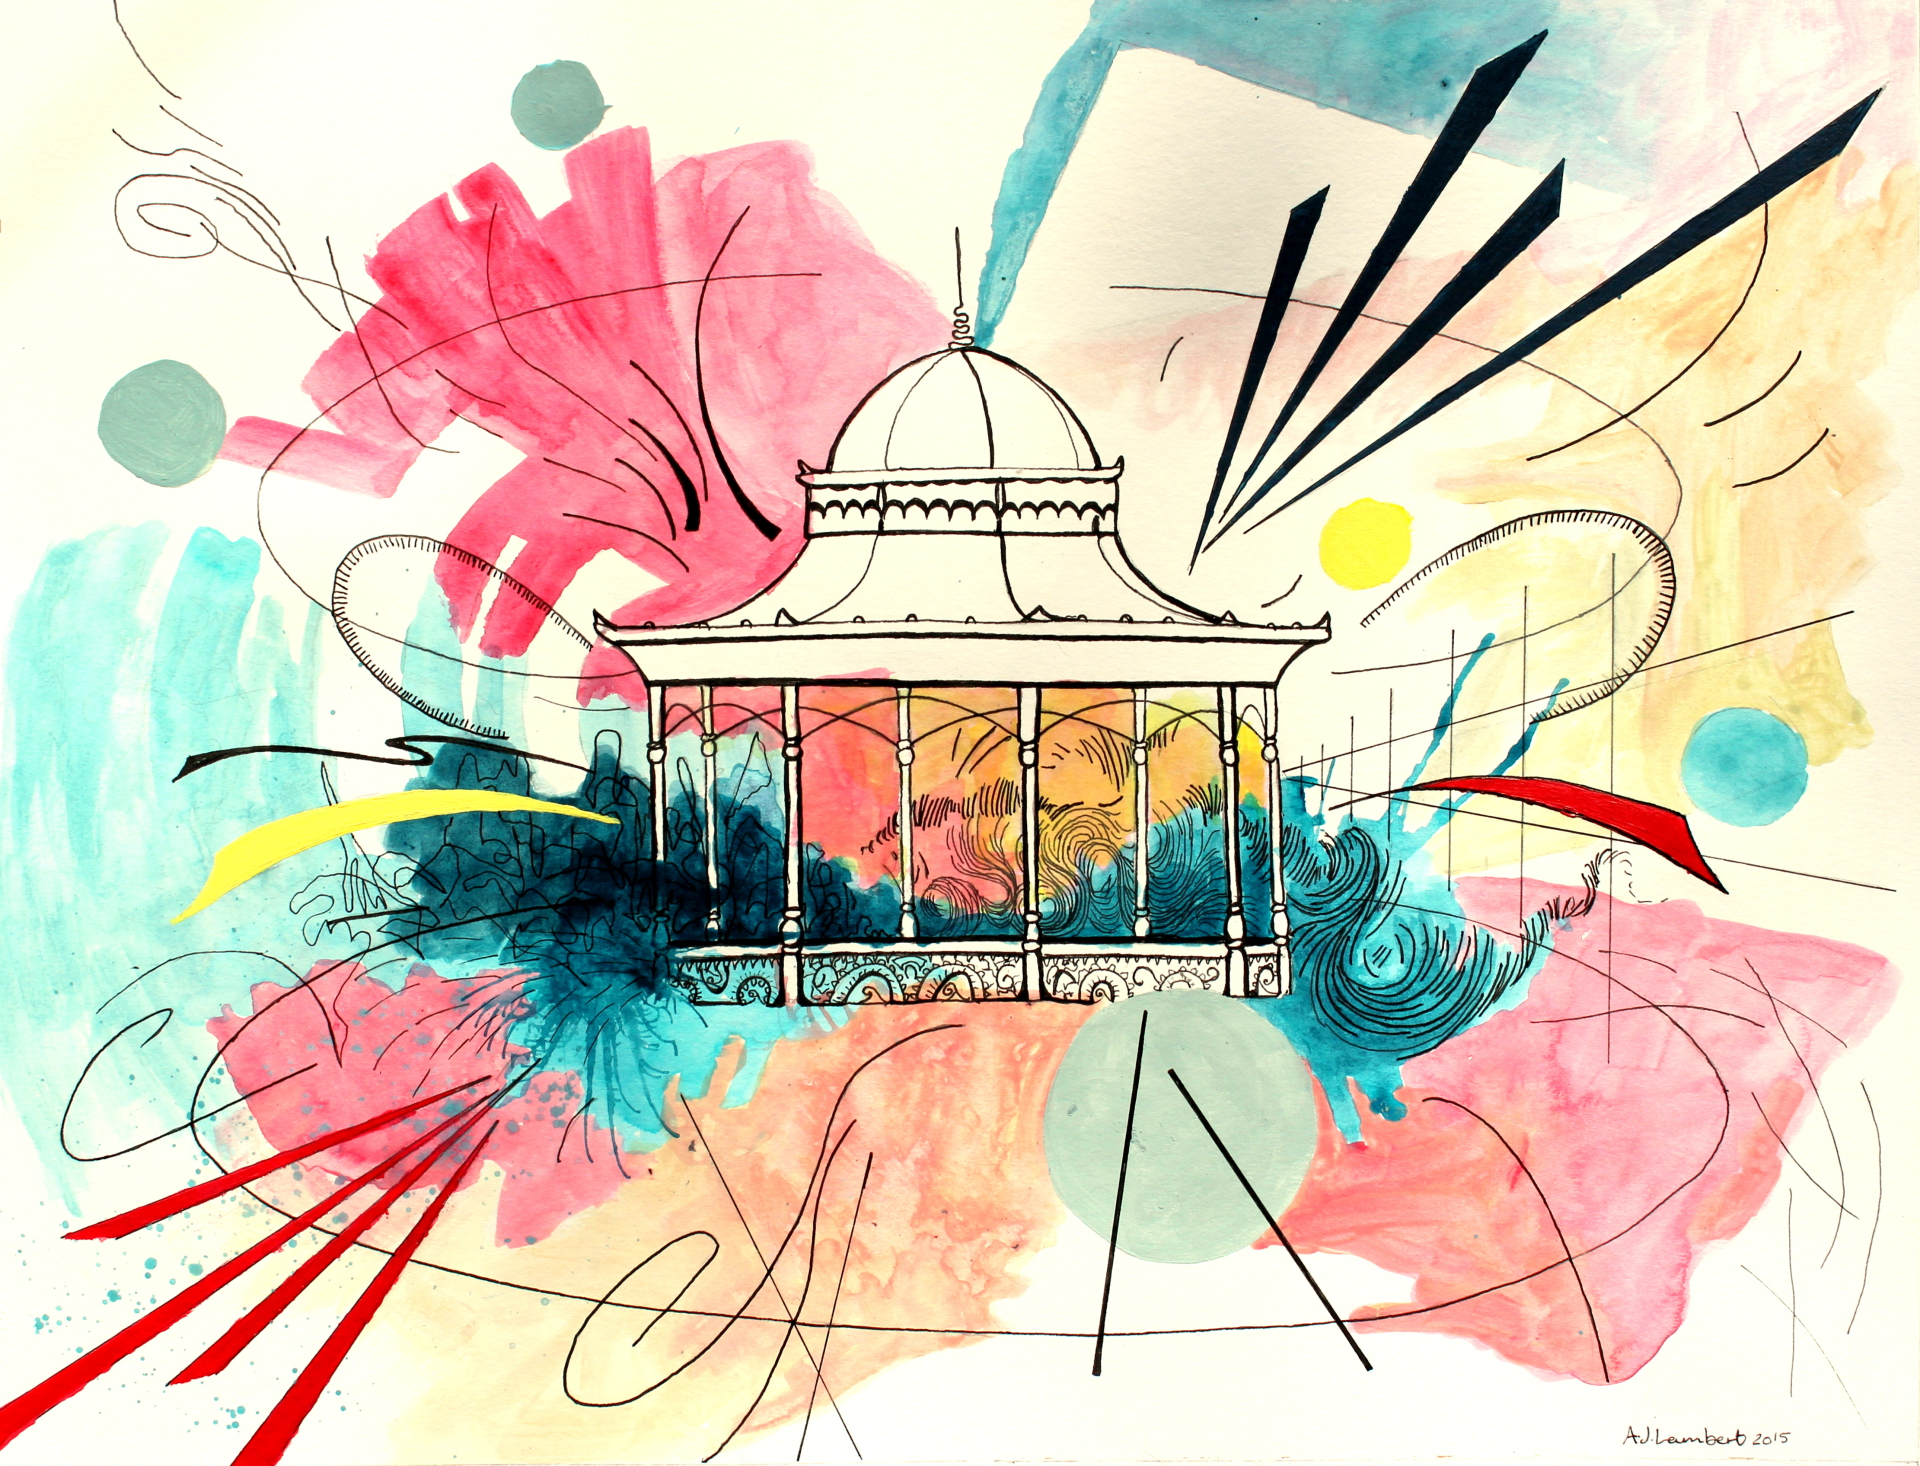 'Magdalen Green Bandstand' 2015. Acrylic and pen on paper. 32.5 cm x 41 cm